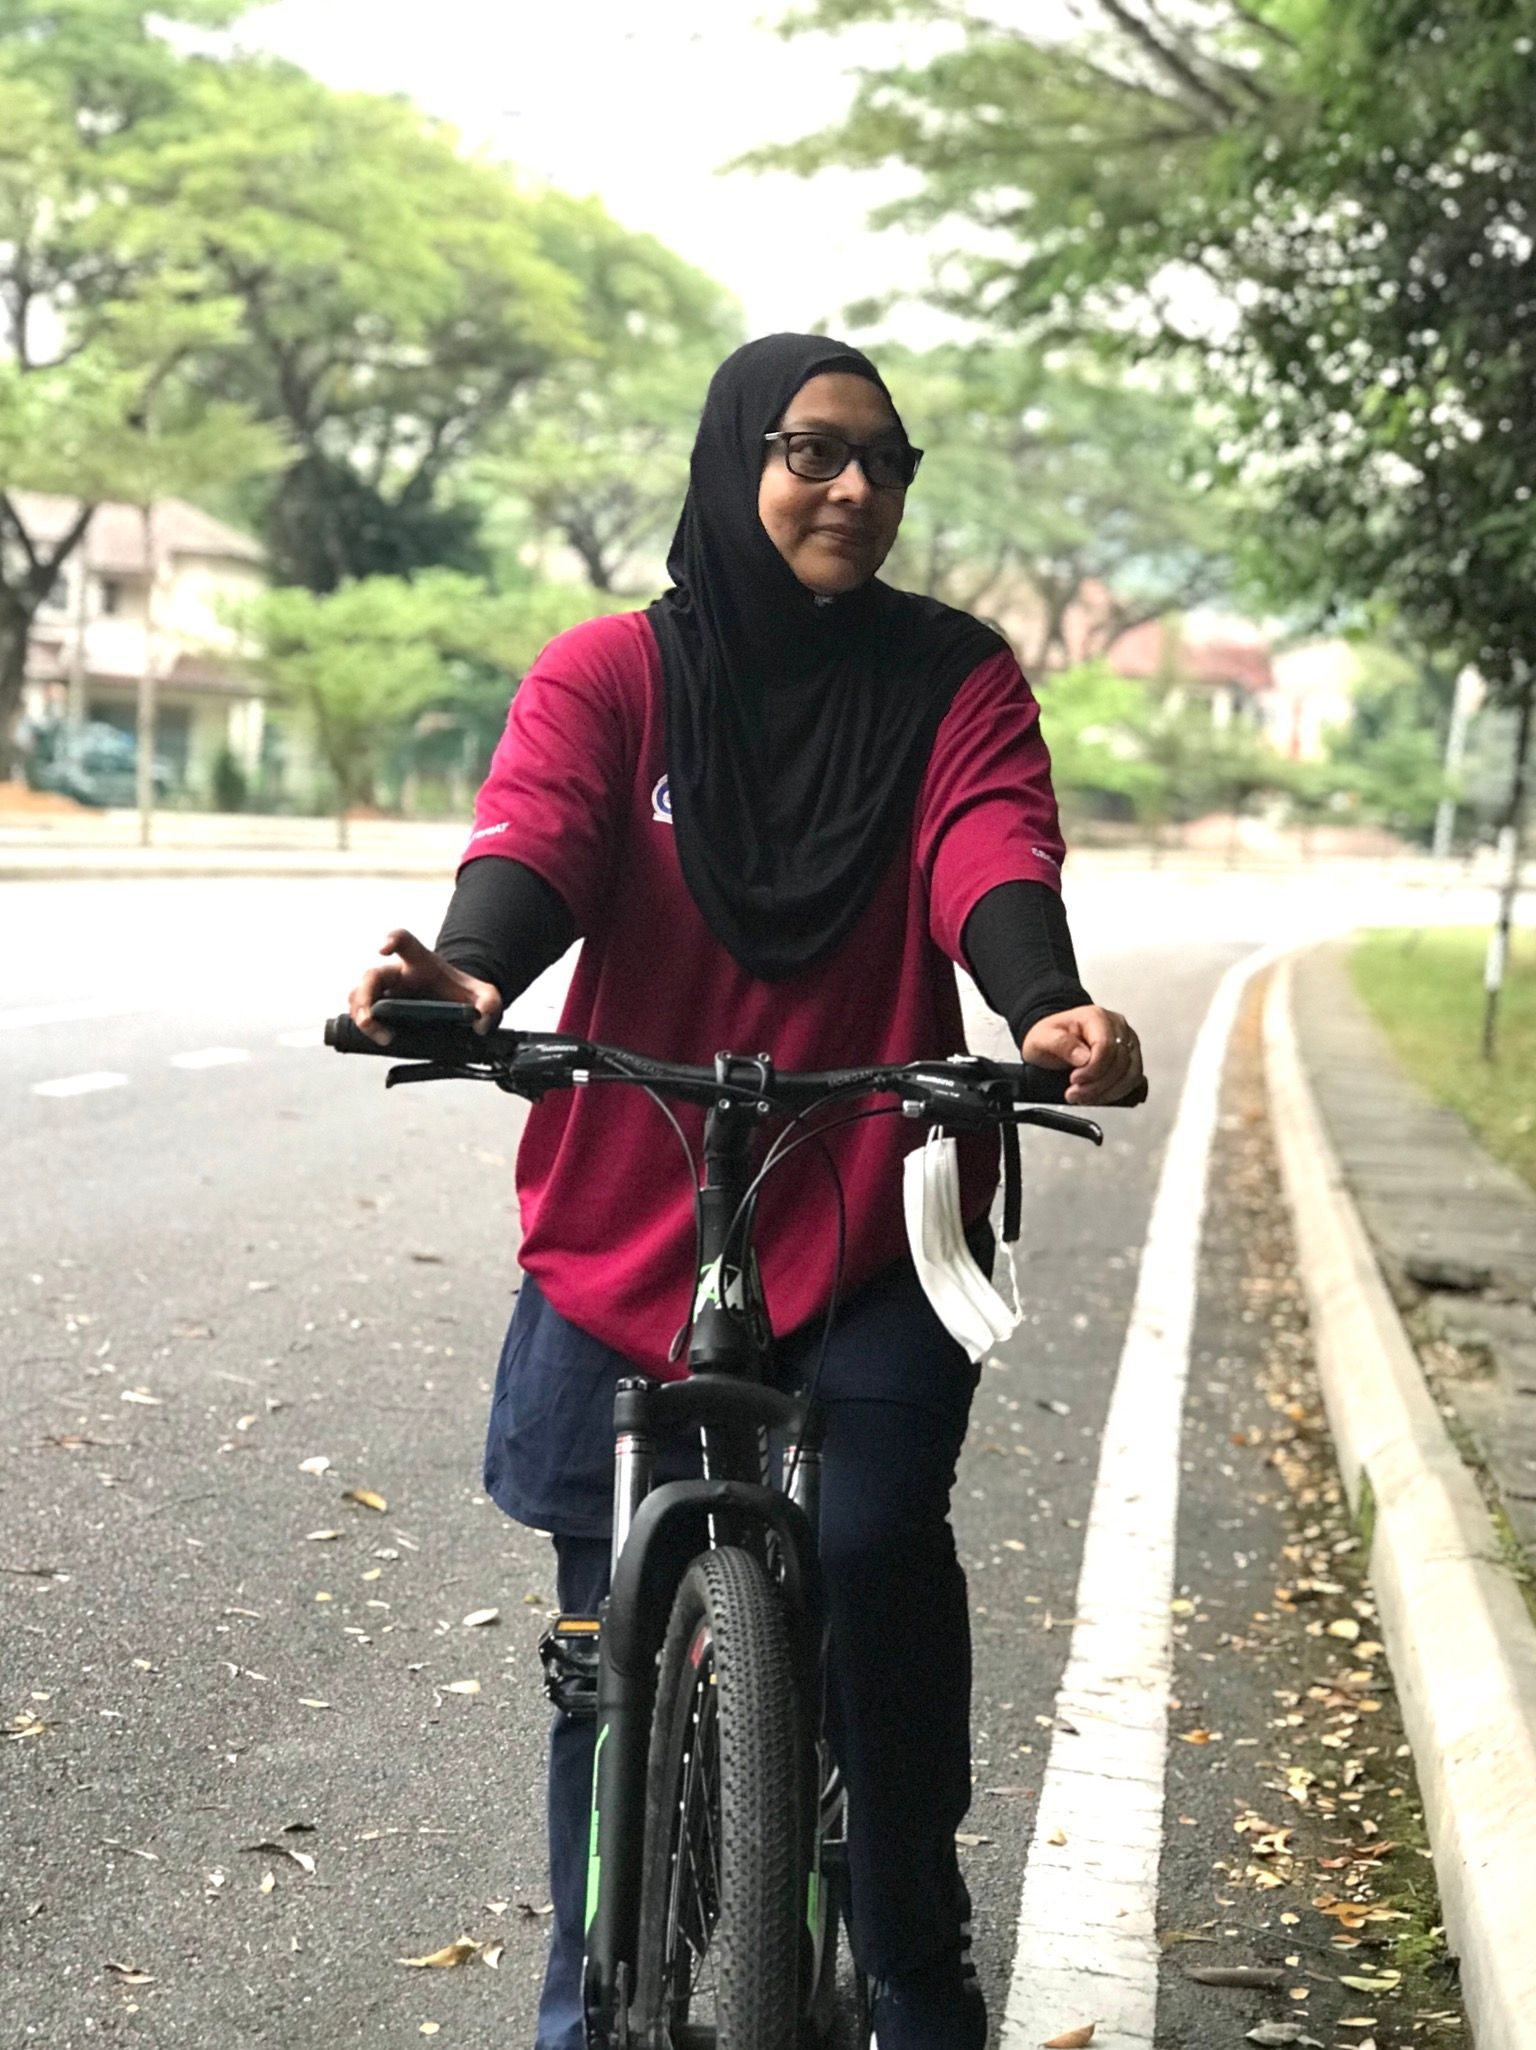 Zainun binti Mohamed Rani rides a bicycle. She is in a black headscarf, red T shirt and dark-rimmed glasses.